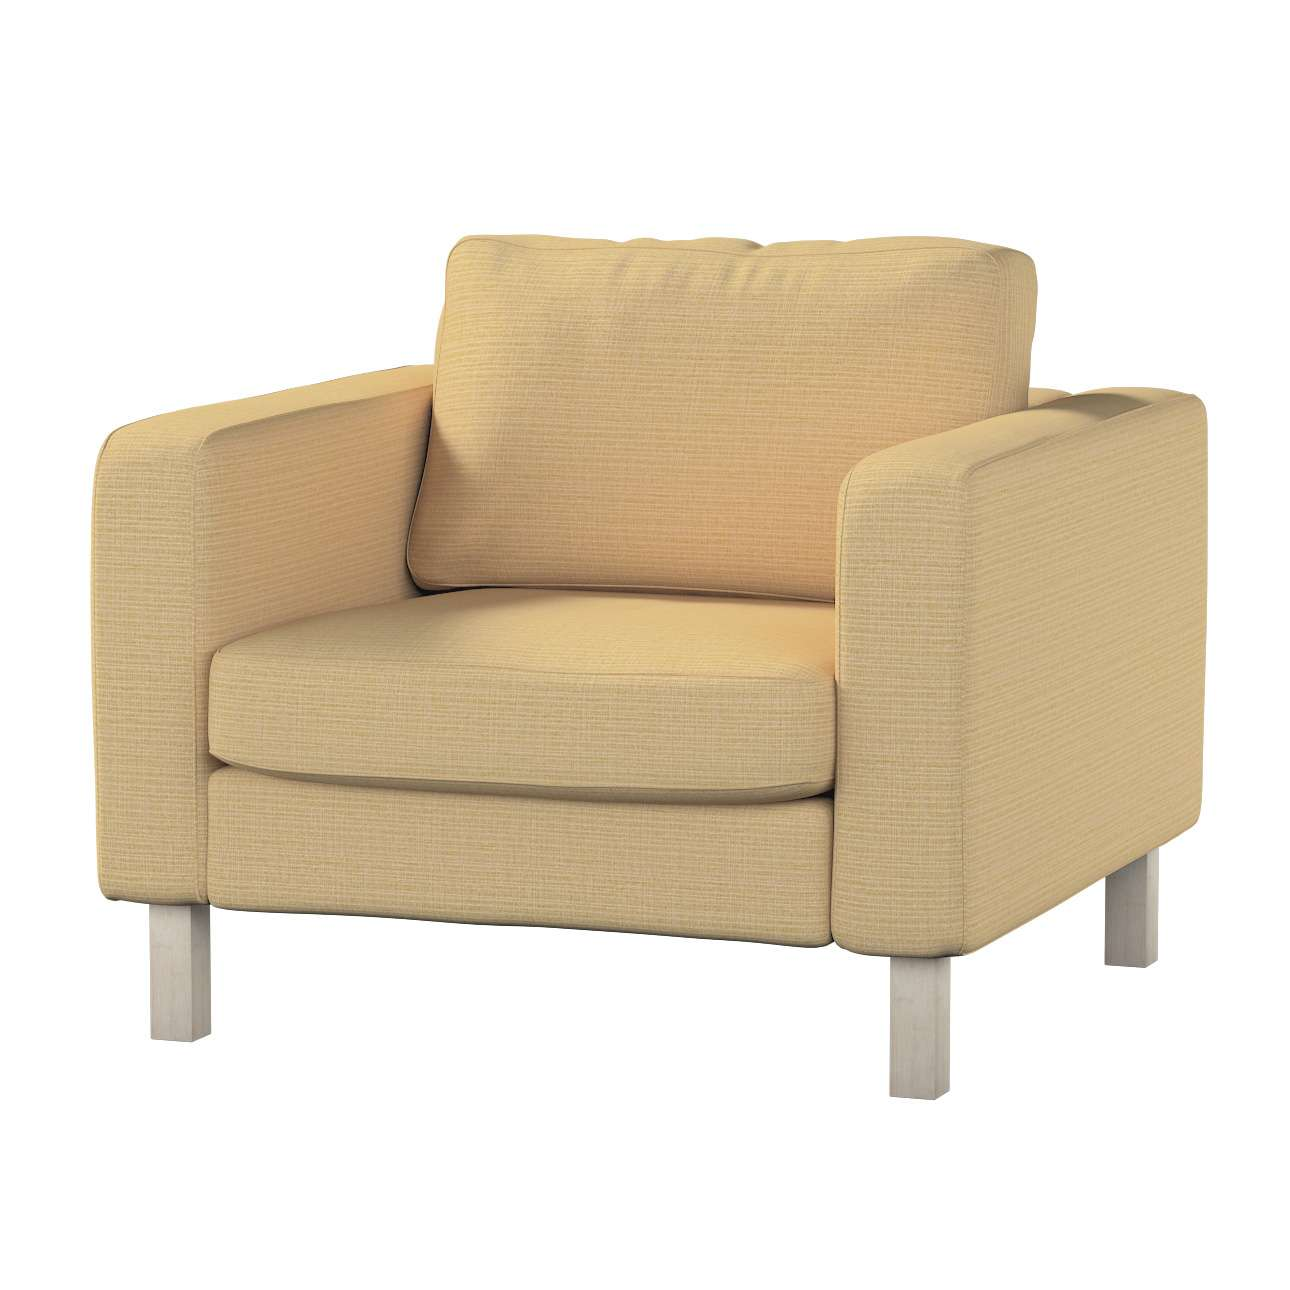 Karlstad armchair cover Karlstad armchair cover in collection Living, fabric: 101-14